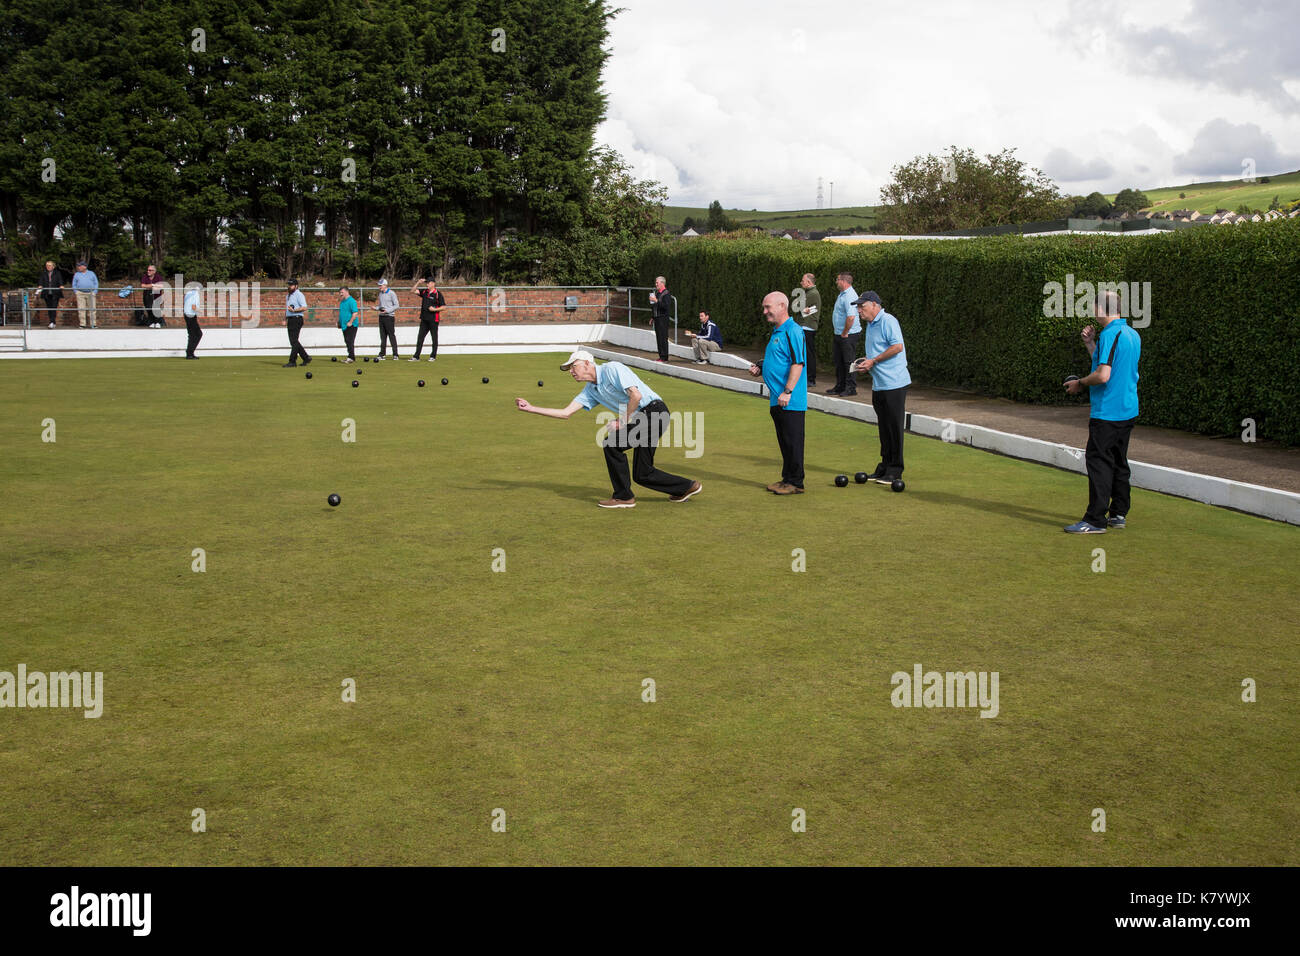 Crown Green Bowling championship in Huddersfield, West Yorkshire U.K. - Stock Image